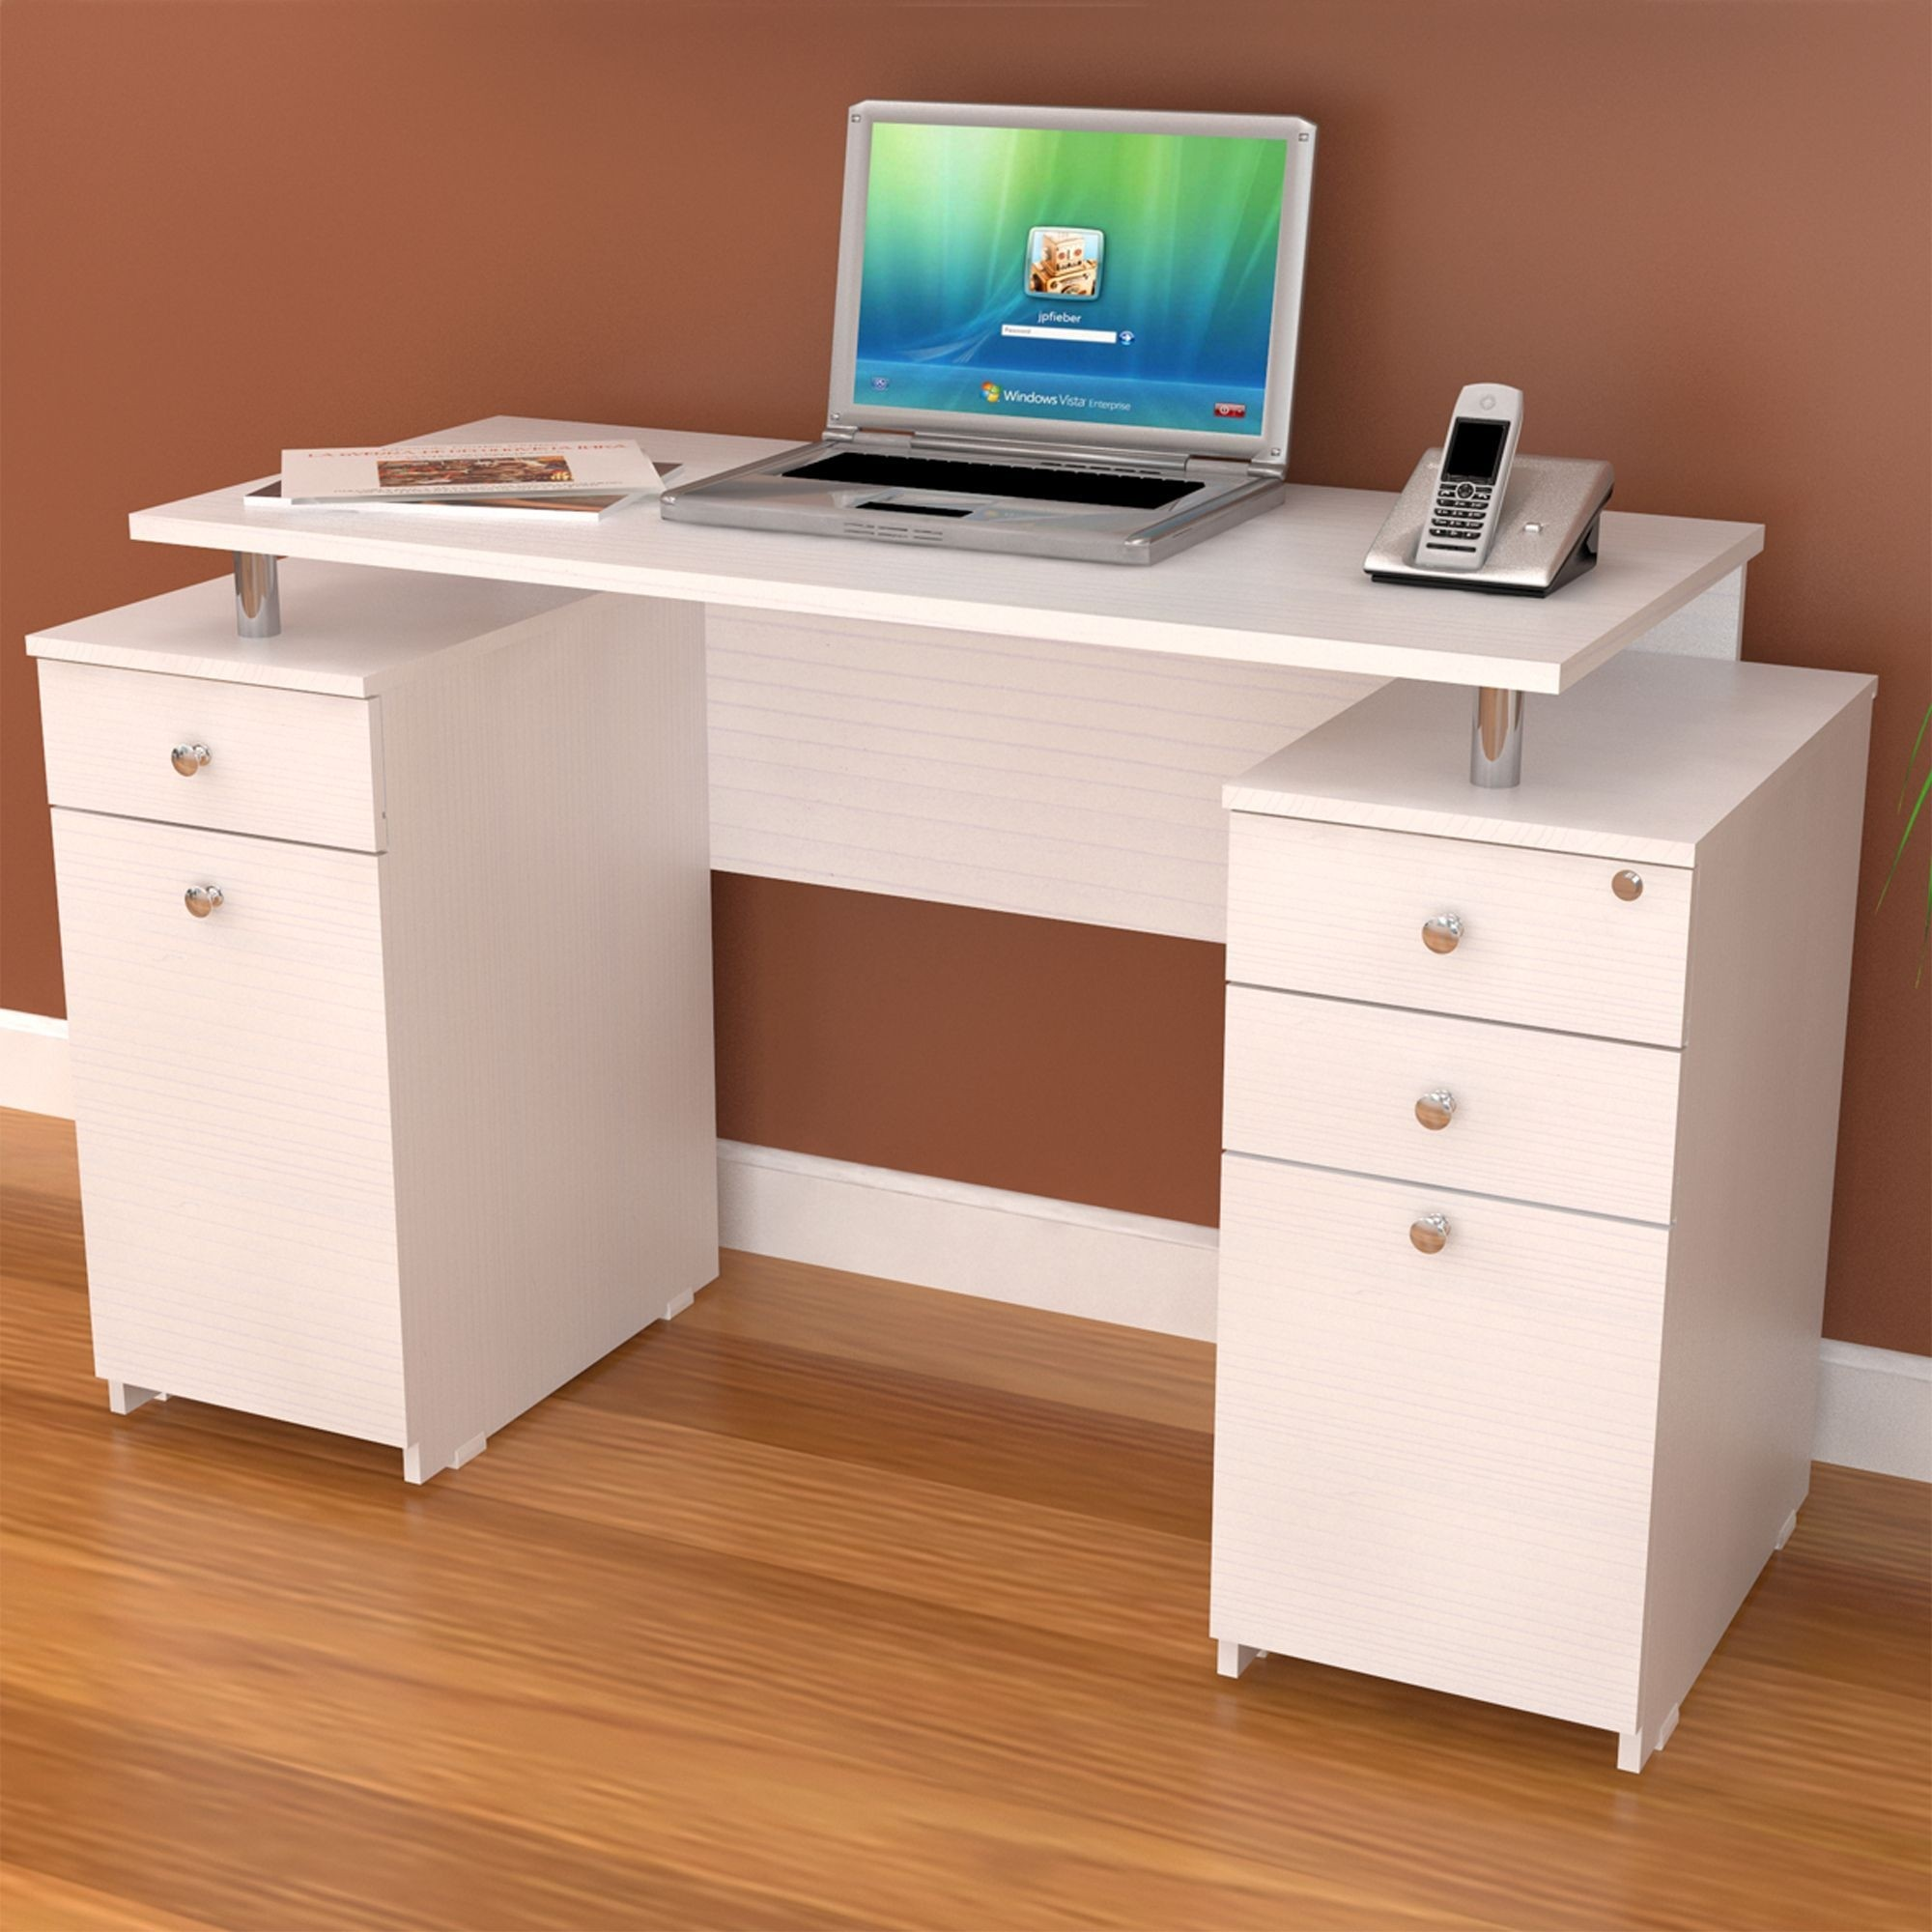 computer desk with locking drawers foter rh foter com desk with locking drawers canada metal desk with locking drawers